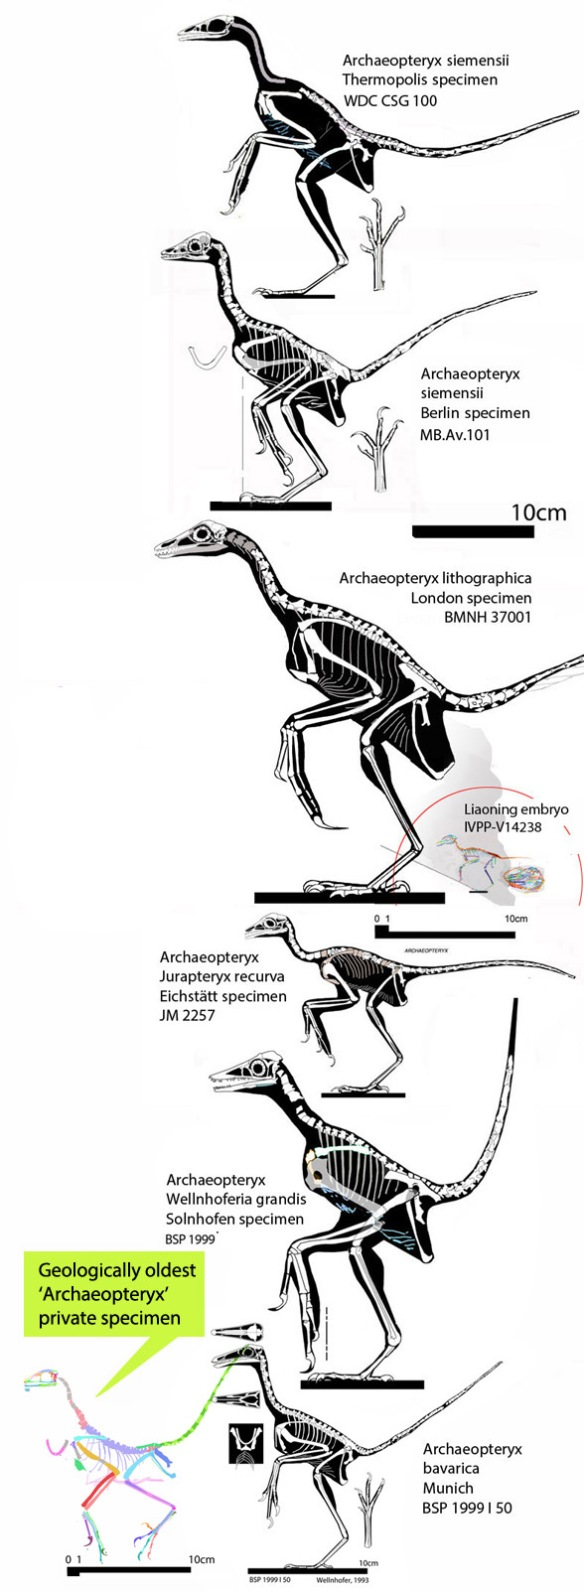 Figure 2. Several Archaeopteryx specimens. The geologically oldest one, (at bottom) is among the smallest and most derived, indicating an earlier radiation than the Solnhofen formation.